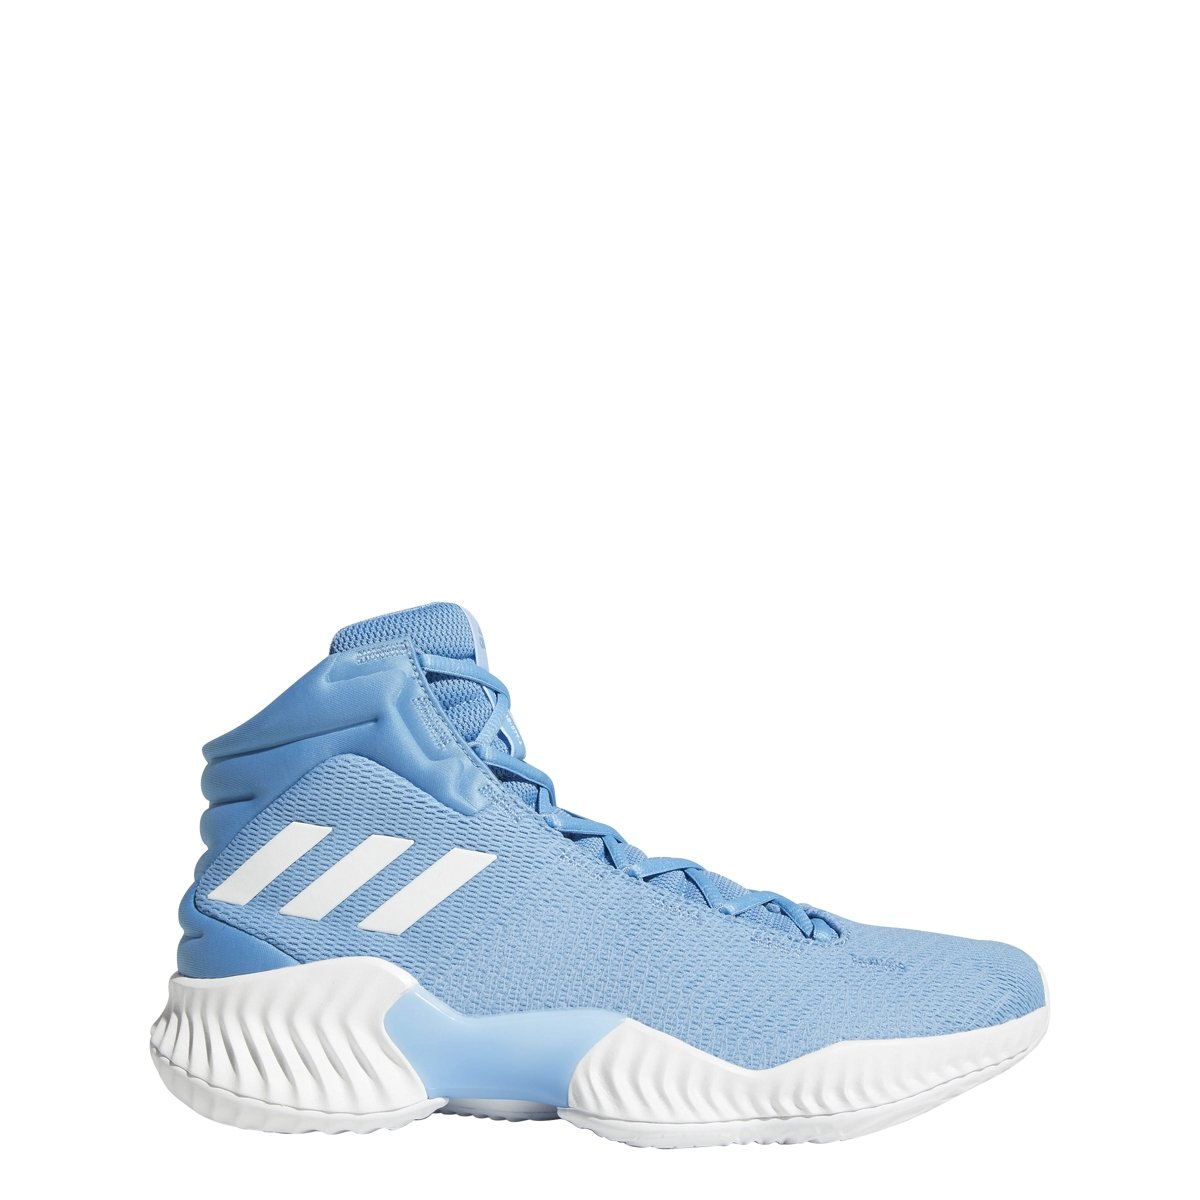 adidas Men's Pro Bounce 2018 Basketball Shoe, White/Light Blue, 4 M US